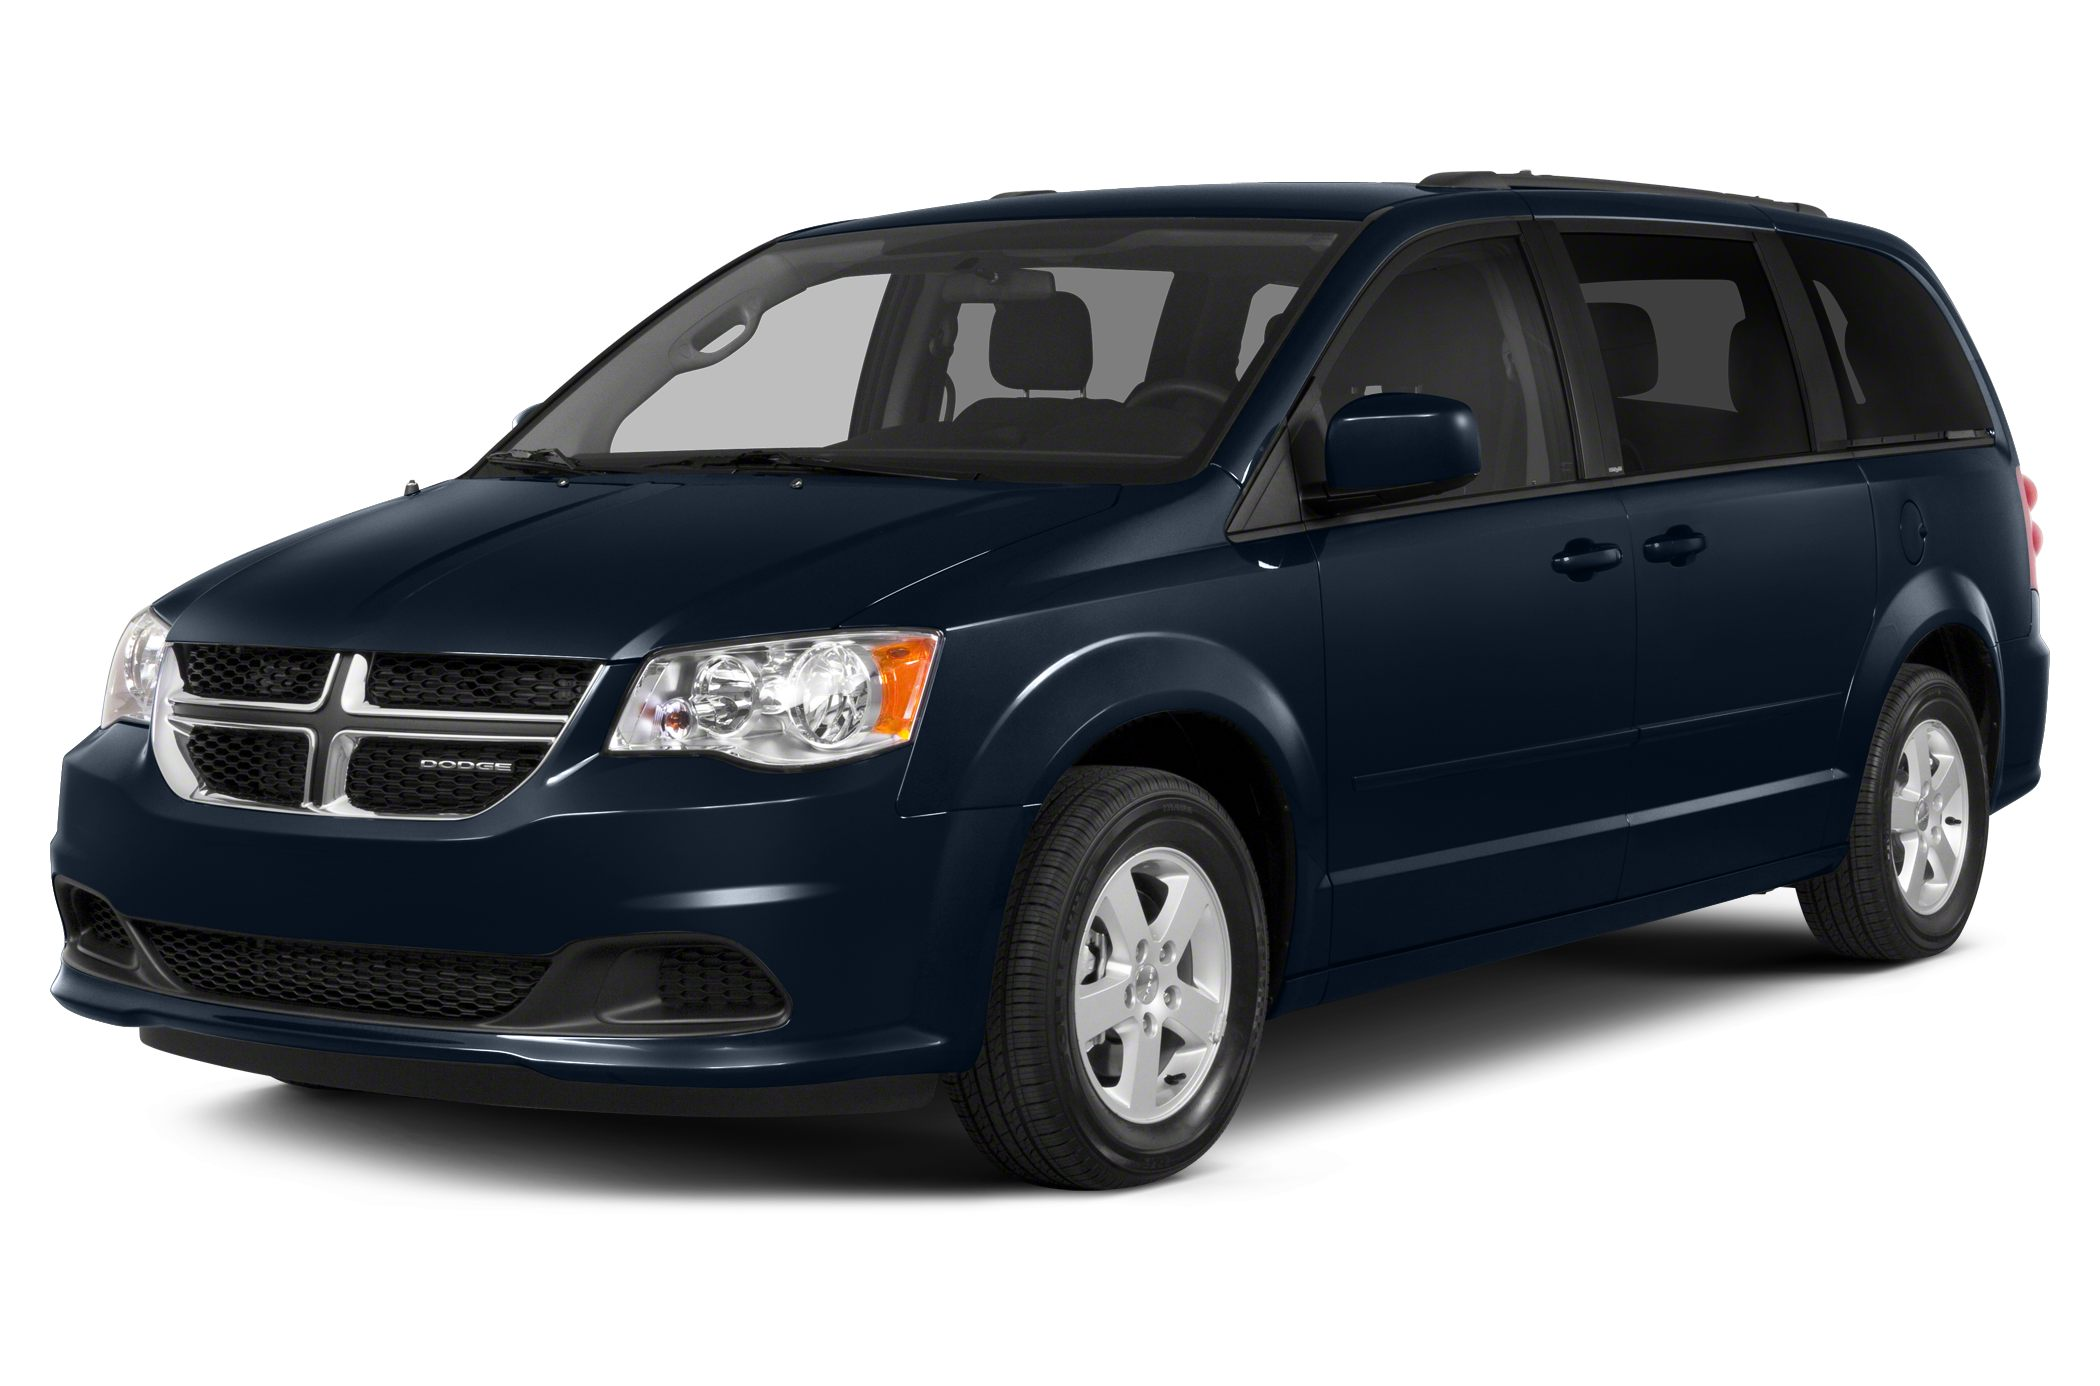 2015 Dodge Grand Caravan AVP/SE Minivan for sale in Carson City for $22,485 with 0 miles